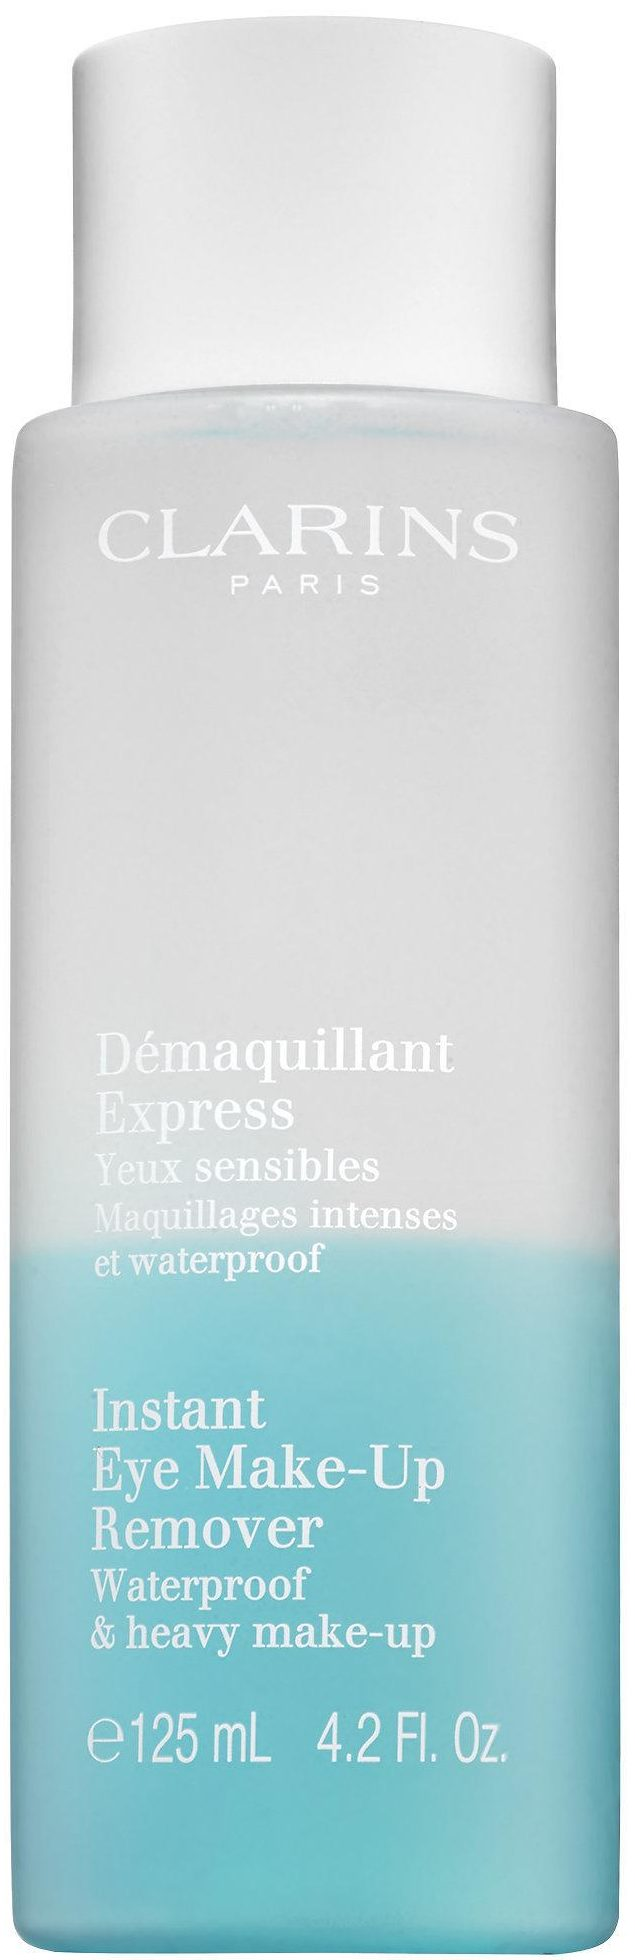 Instant Eye Make-Up Remover от Clarins